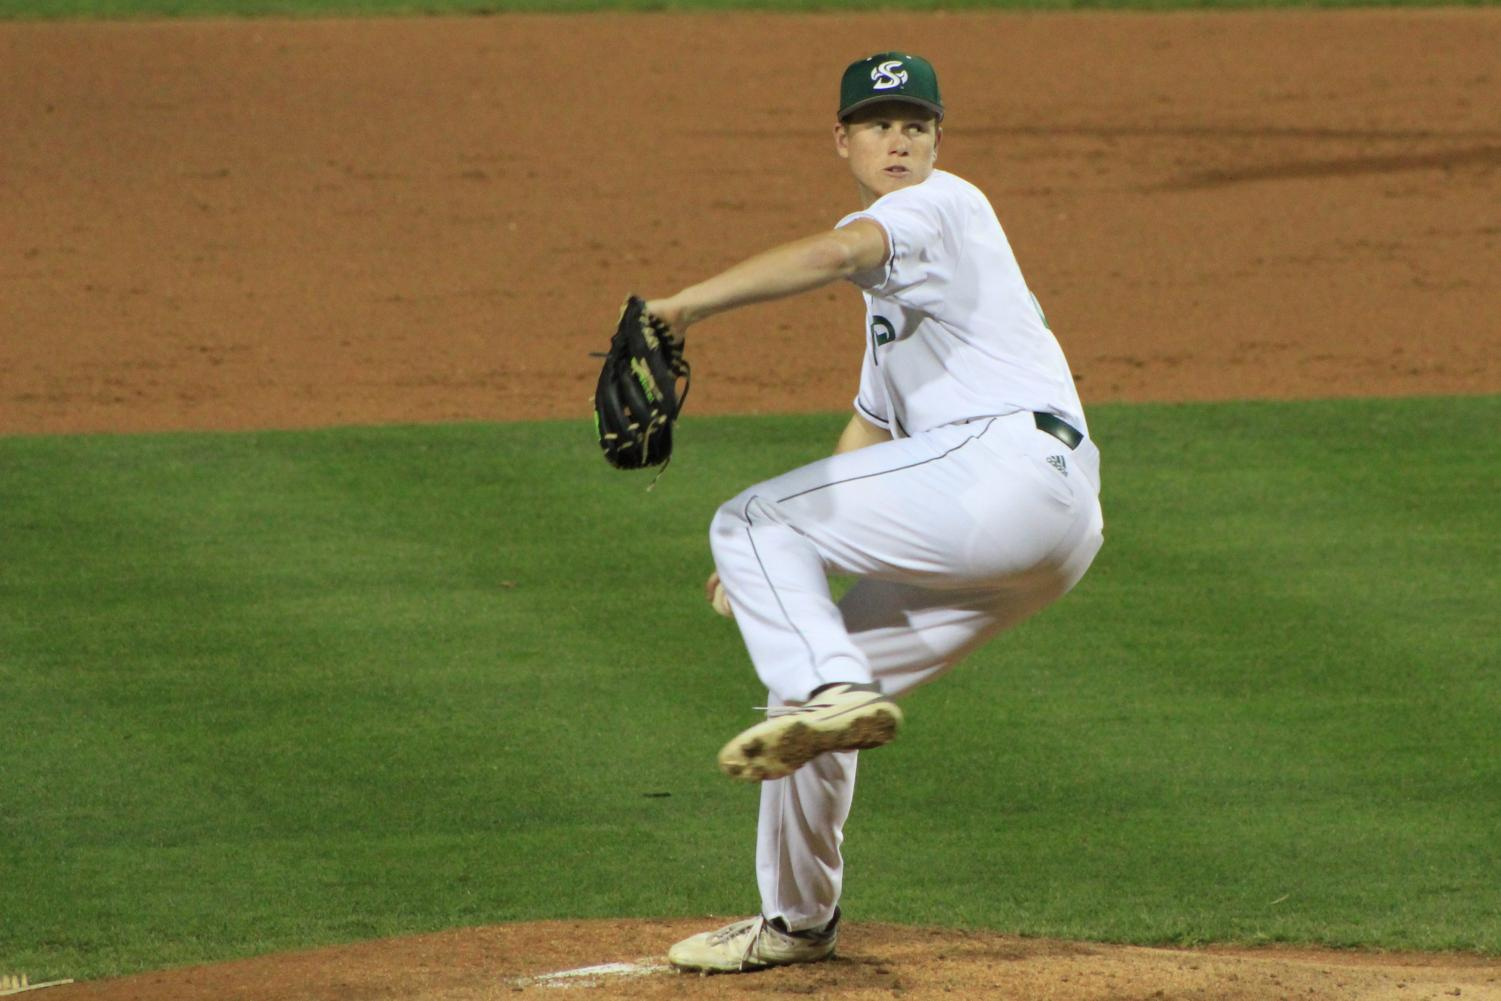 Sacramento State right-handed sophomore pitcher Parker Brahms prepares to deliver the baseball to the strike zone against Santa Clara University at John Smith Field on Sat., March 10, 2018. Brahms, who was named to the Western Athletic Conference first team last season, earned WAC Pitcher of the Week honors on March 5.